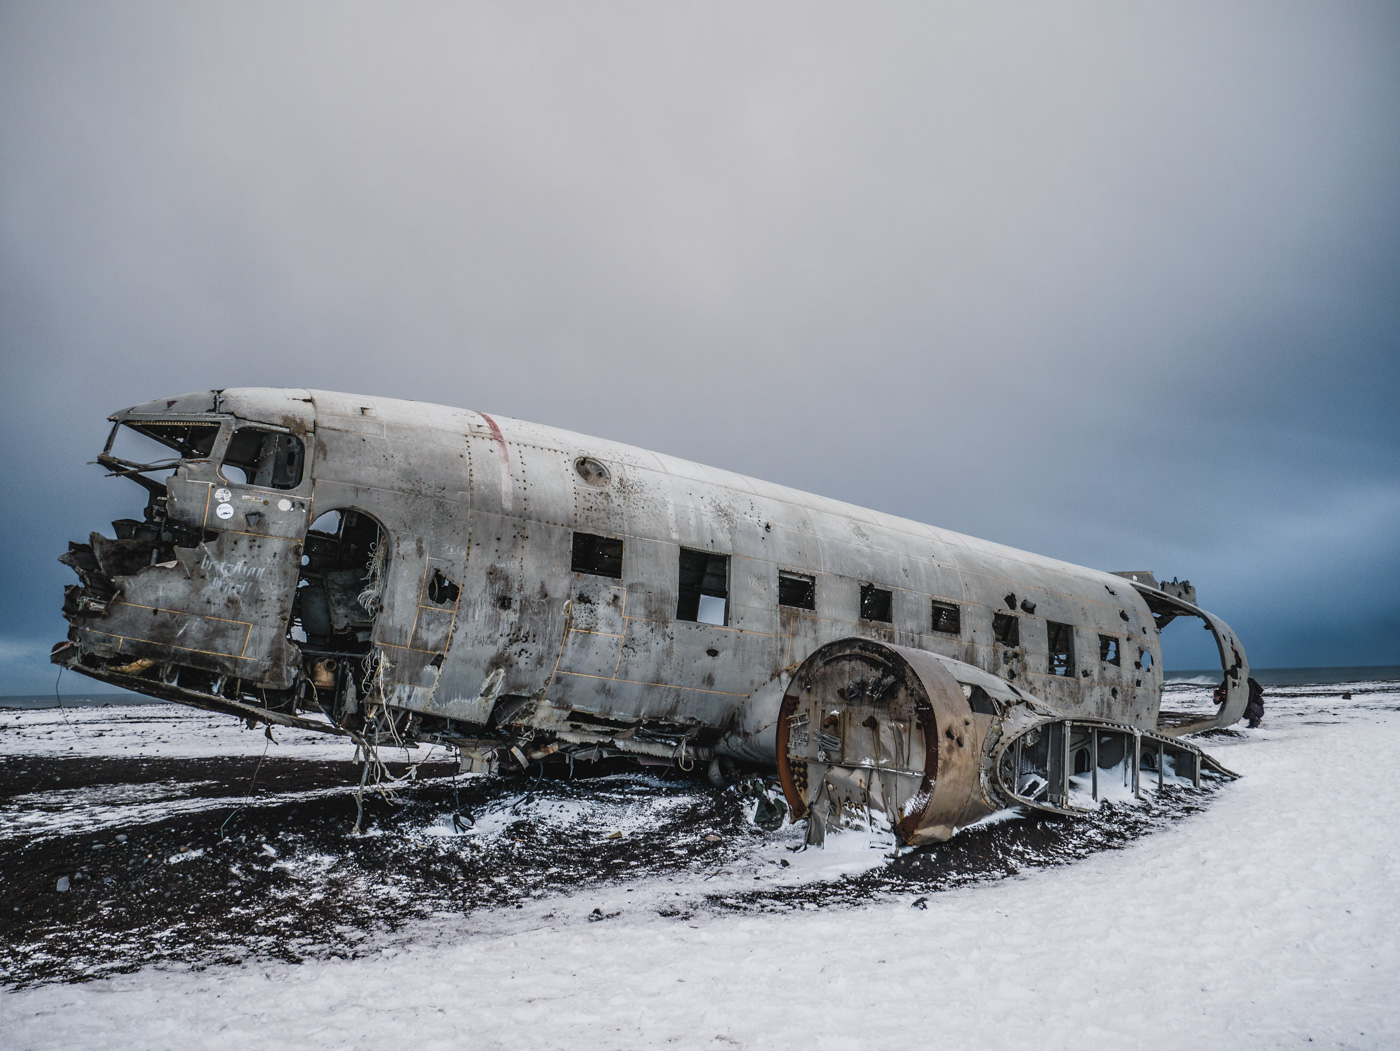 Plane wreck Iceland